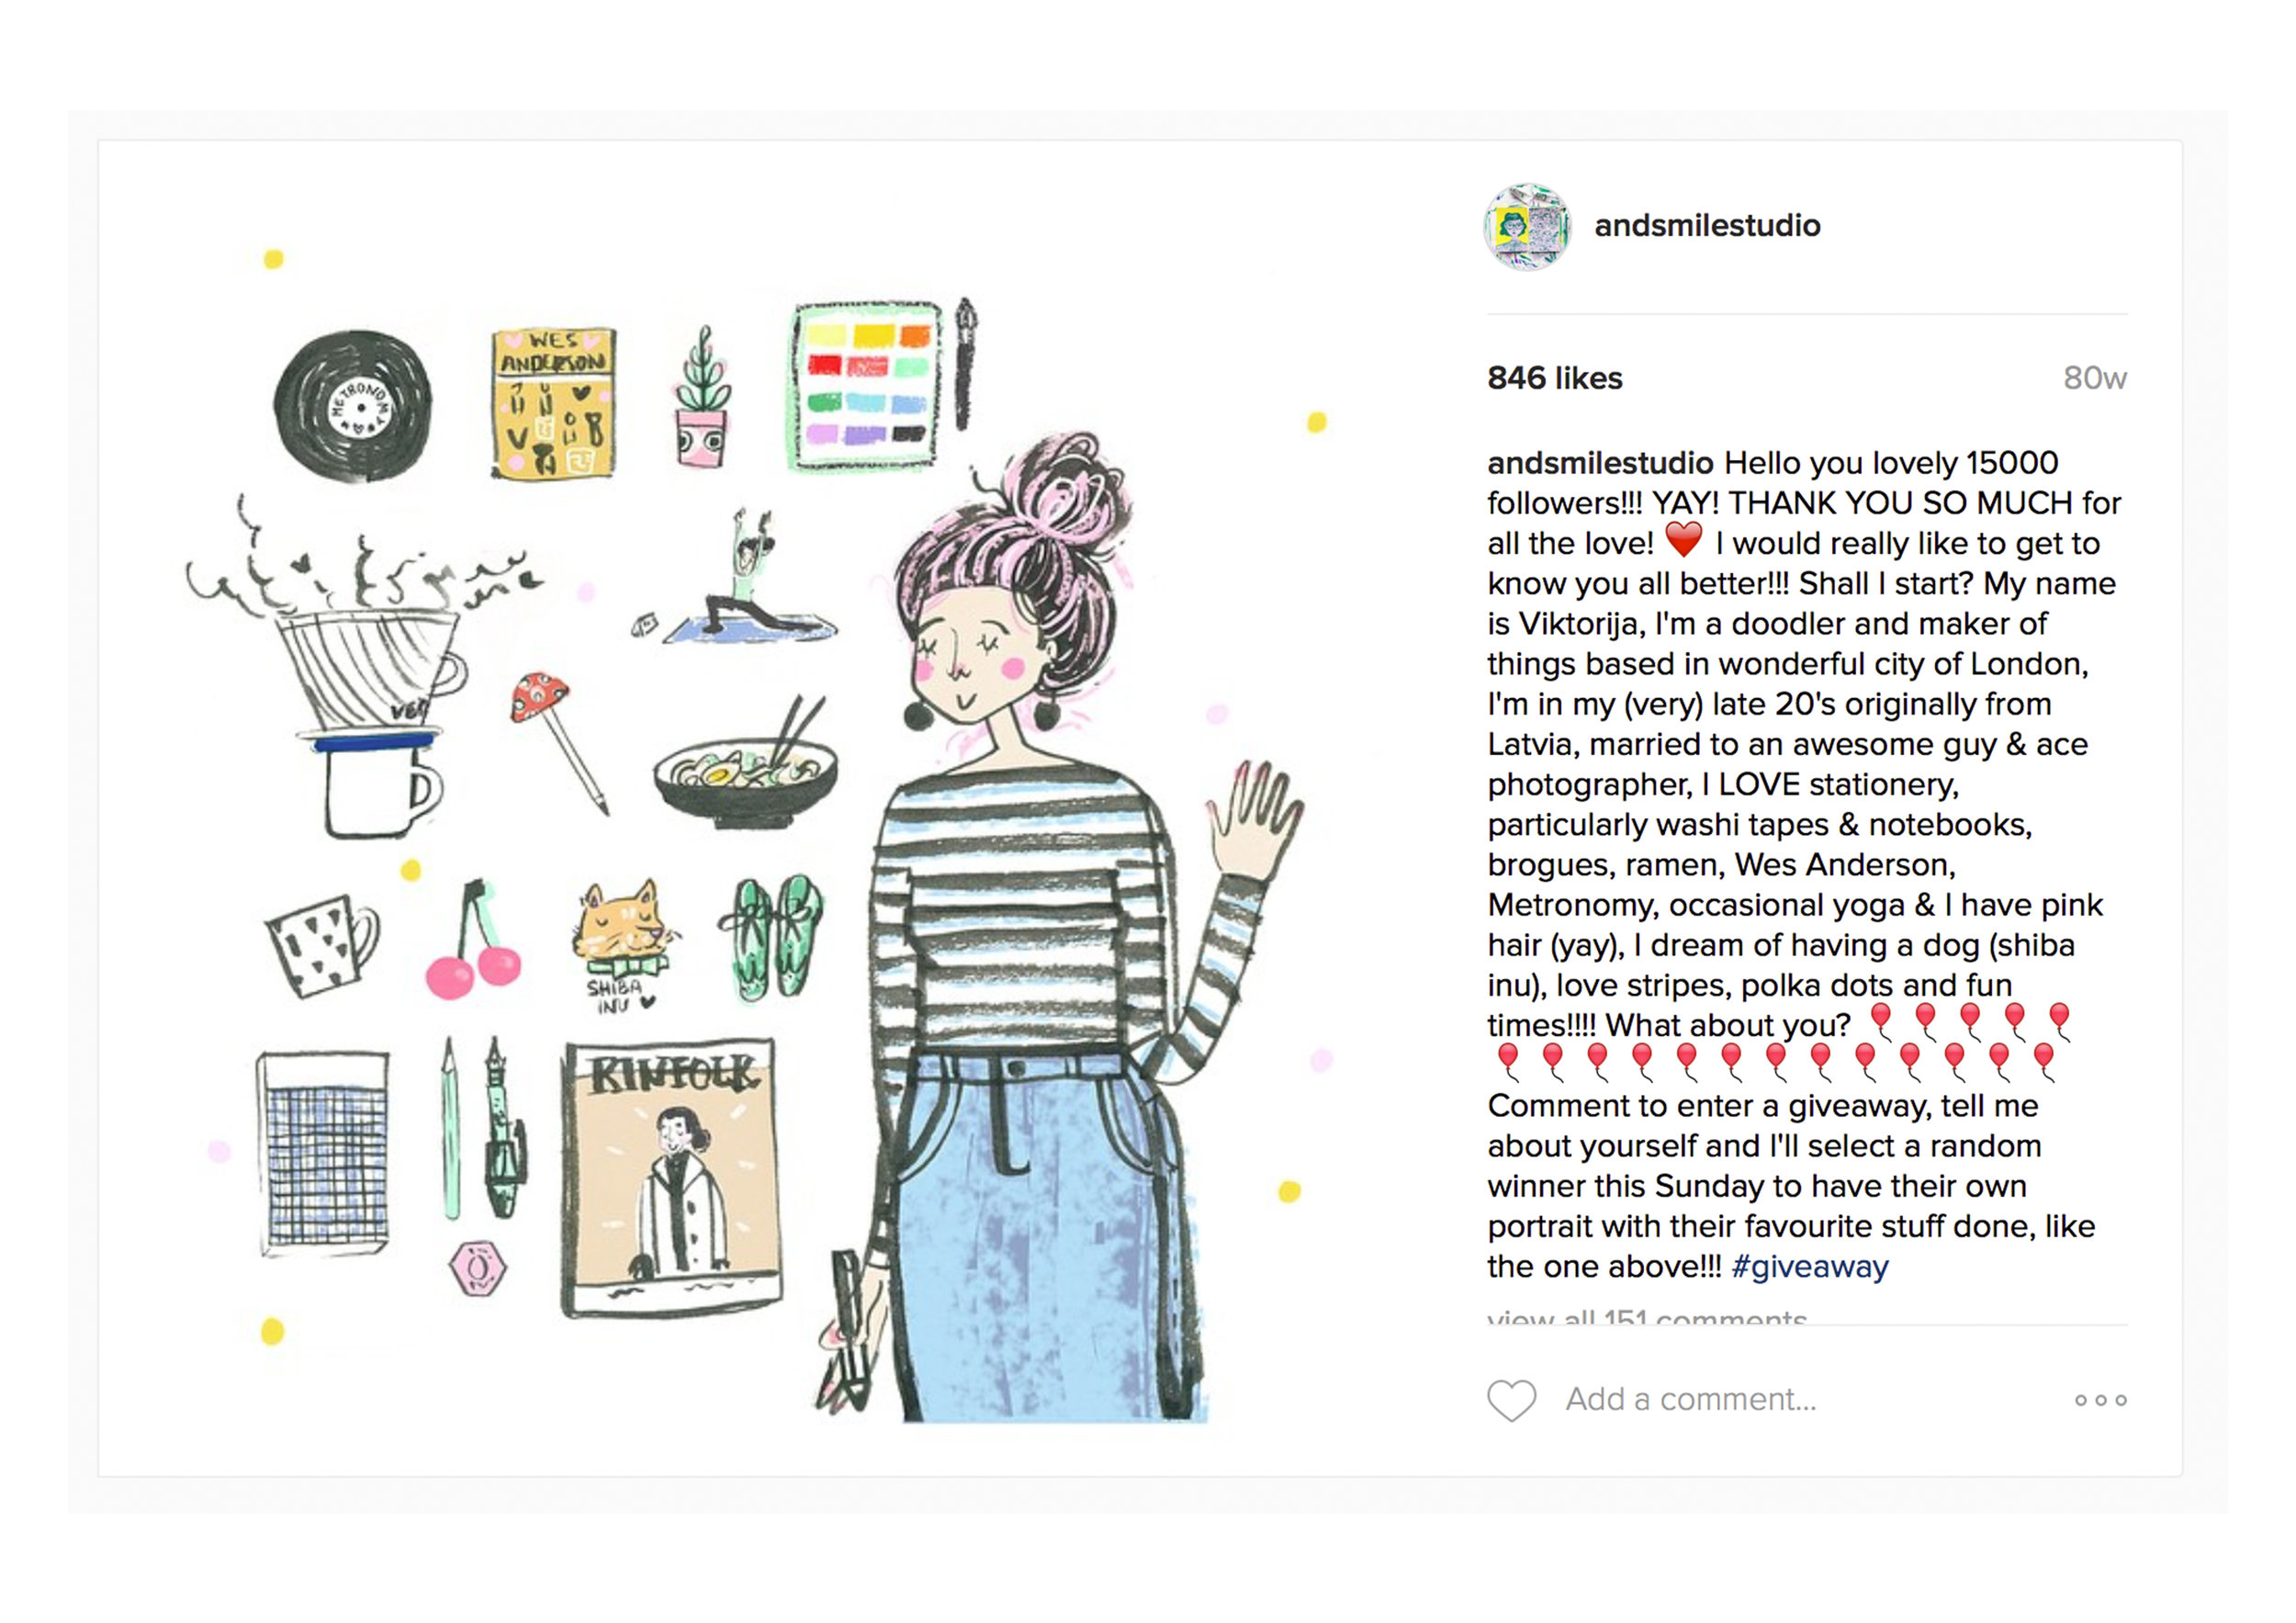 Silly idea to share who I am and what I love in an attempt to try to know people who follow me on insta and the response had my heart jump for joy and I did a little cry. I truly comprehended like how flipping big and awesome instagram community is!